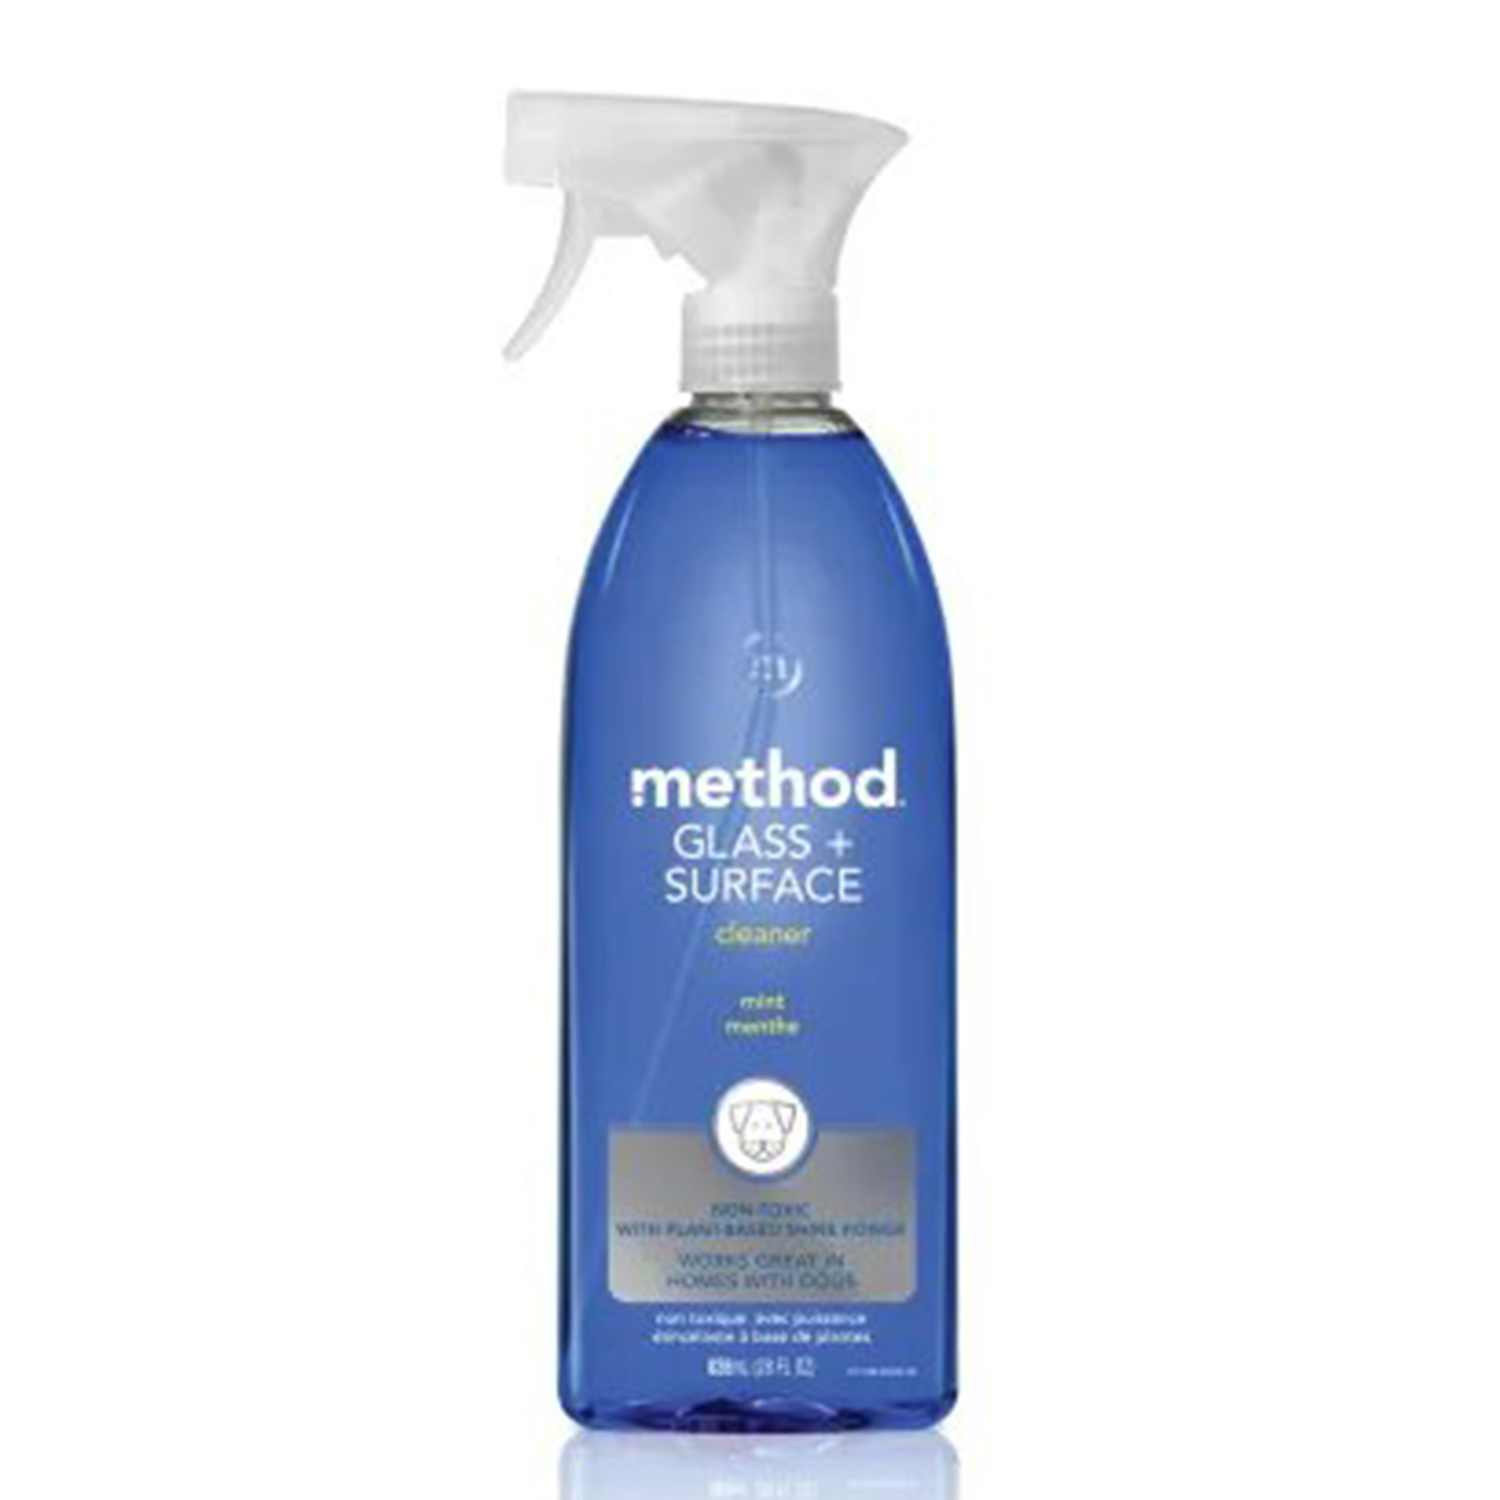 Method Mint Glass Cleaner + Surface Cleaner for Dog